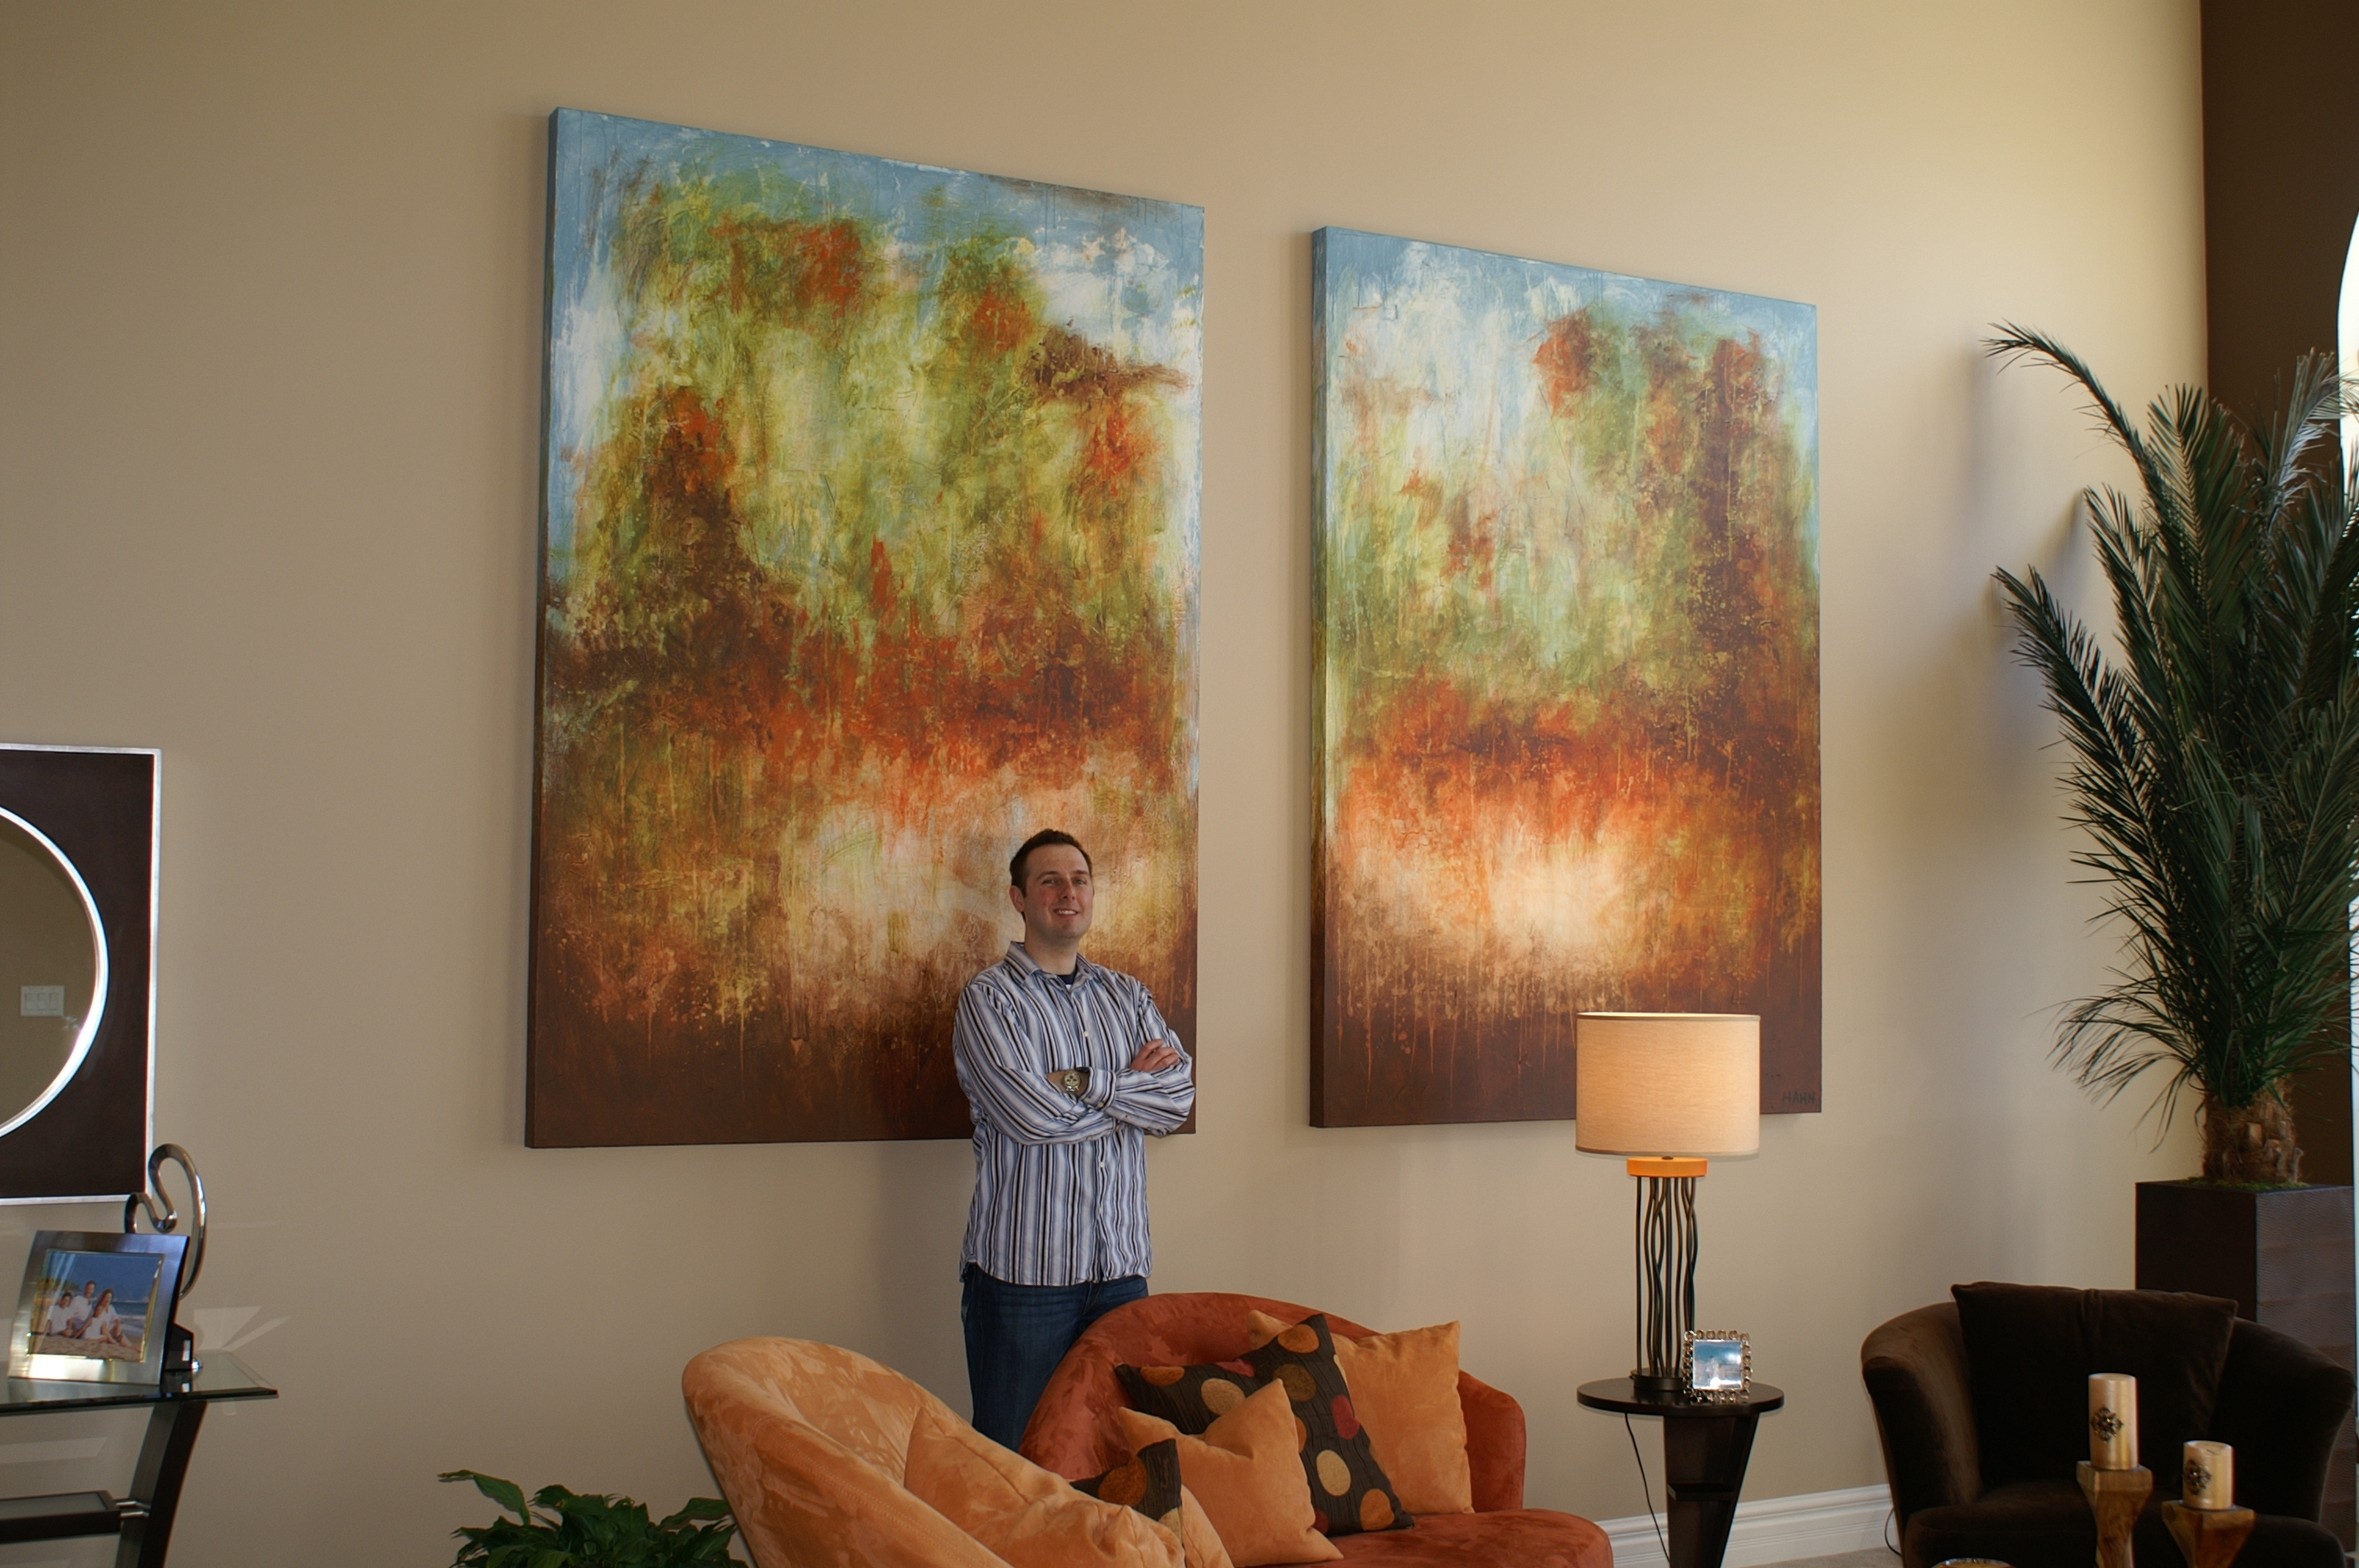 Oversized Commissioned Painting For A Two Story Great Room – Andy Intended For Most Up To Date Huge Abstract Wall Art (View 13 of 20)